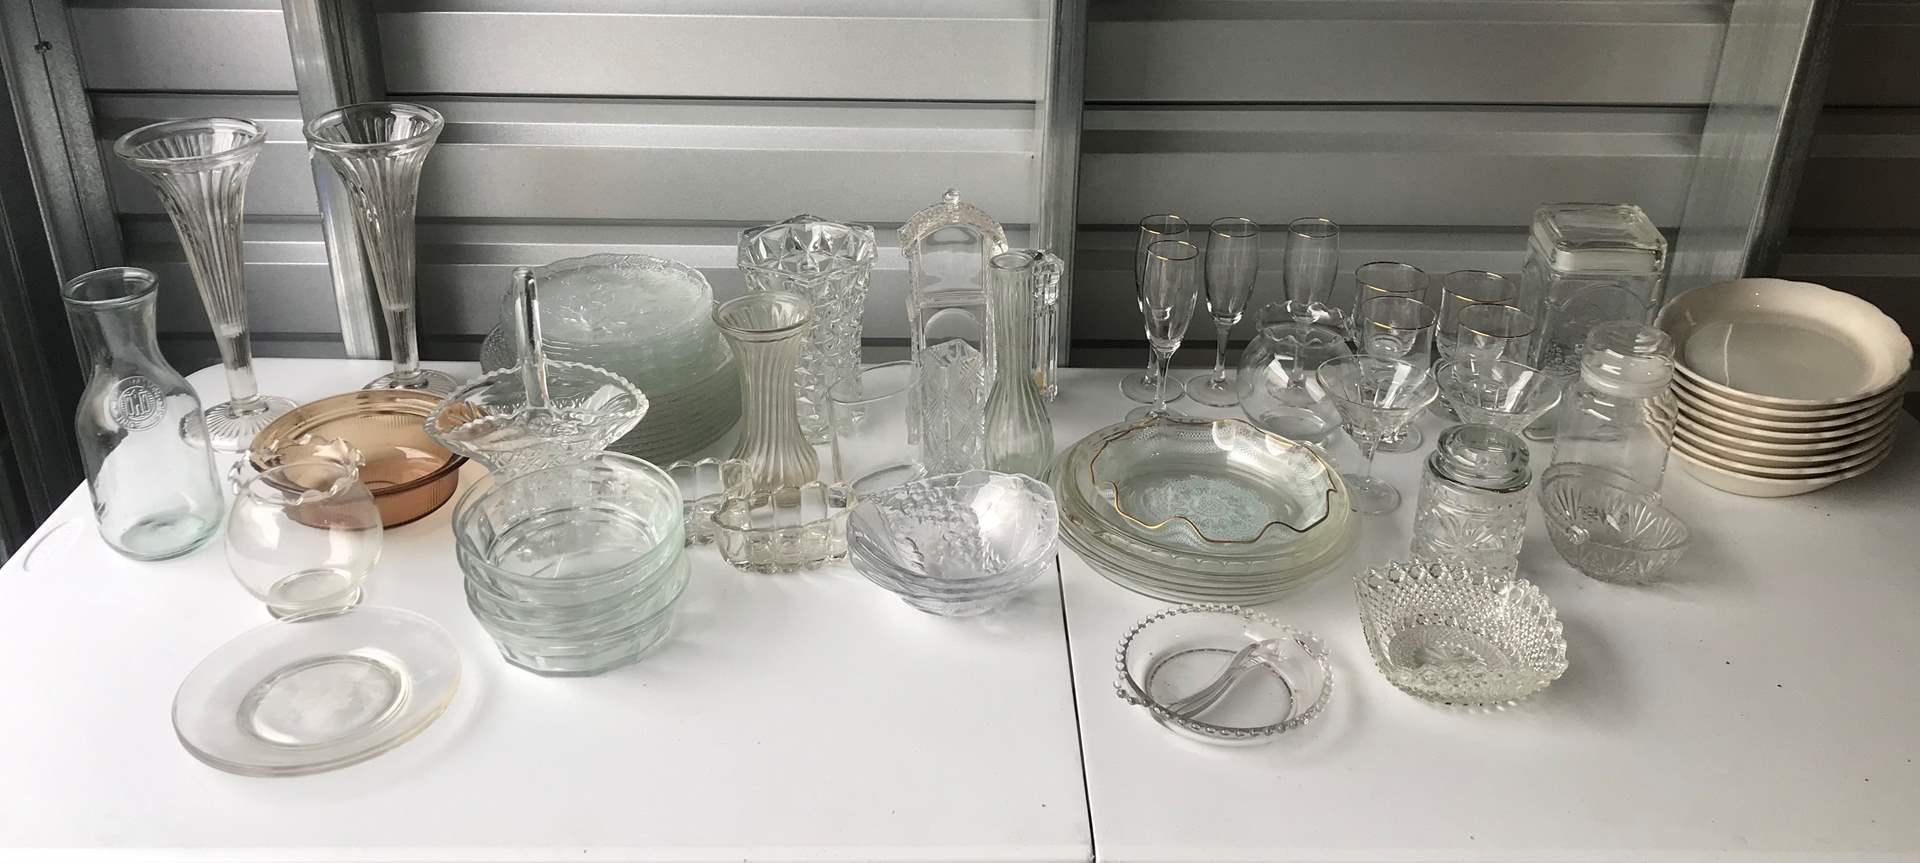 Lot # 44 - Large Selection of Glass Items: Crystal, Stemware, Baking Dishes & More.. (main image)